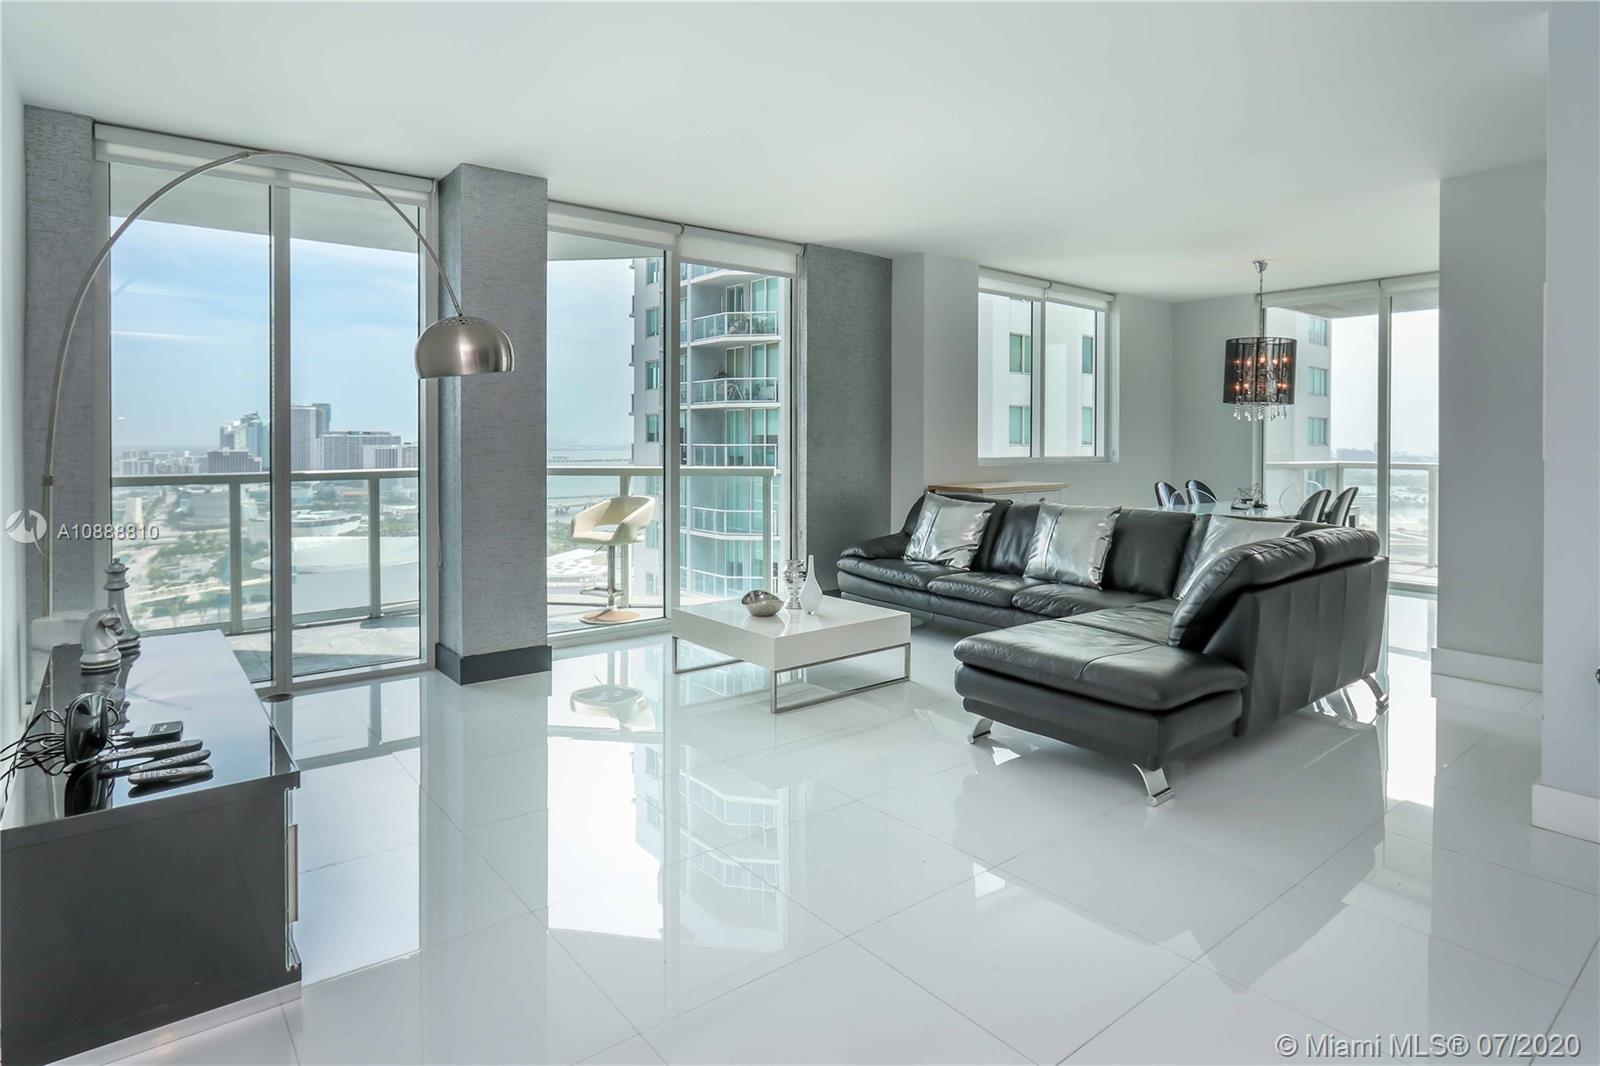 Photo of Vizcayne South Condo Apt 3303 that clicks through to the property detail page